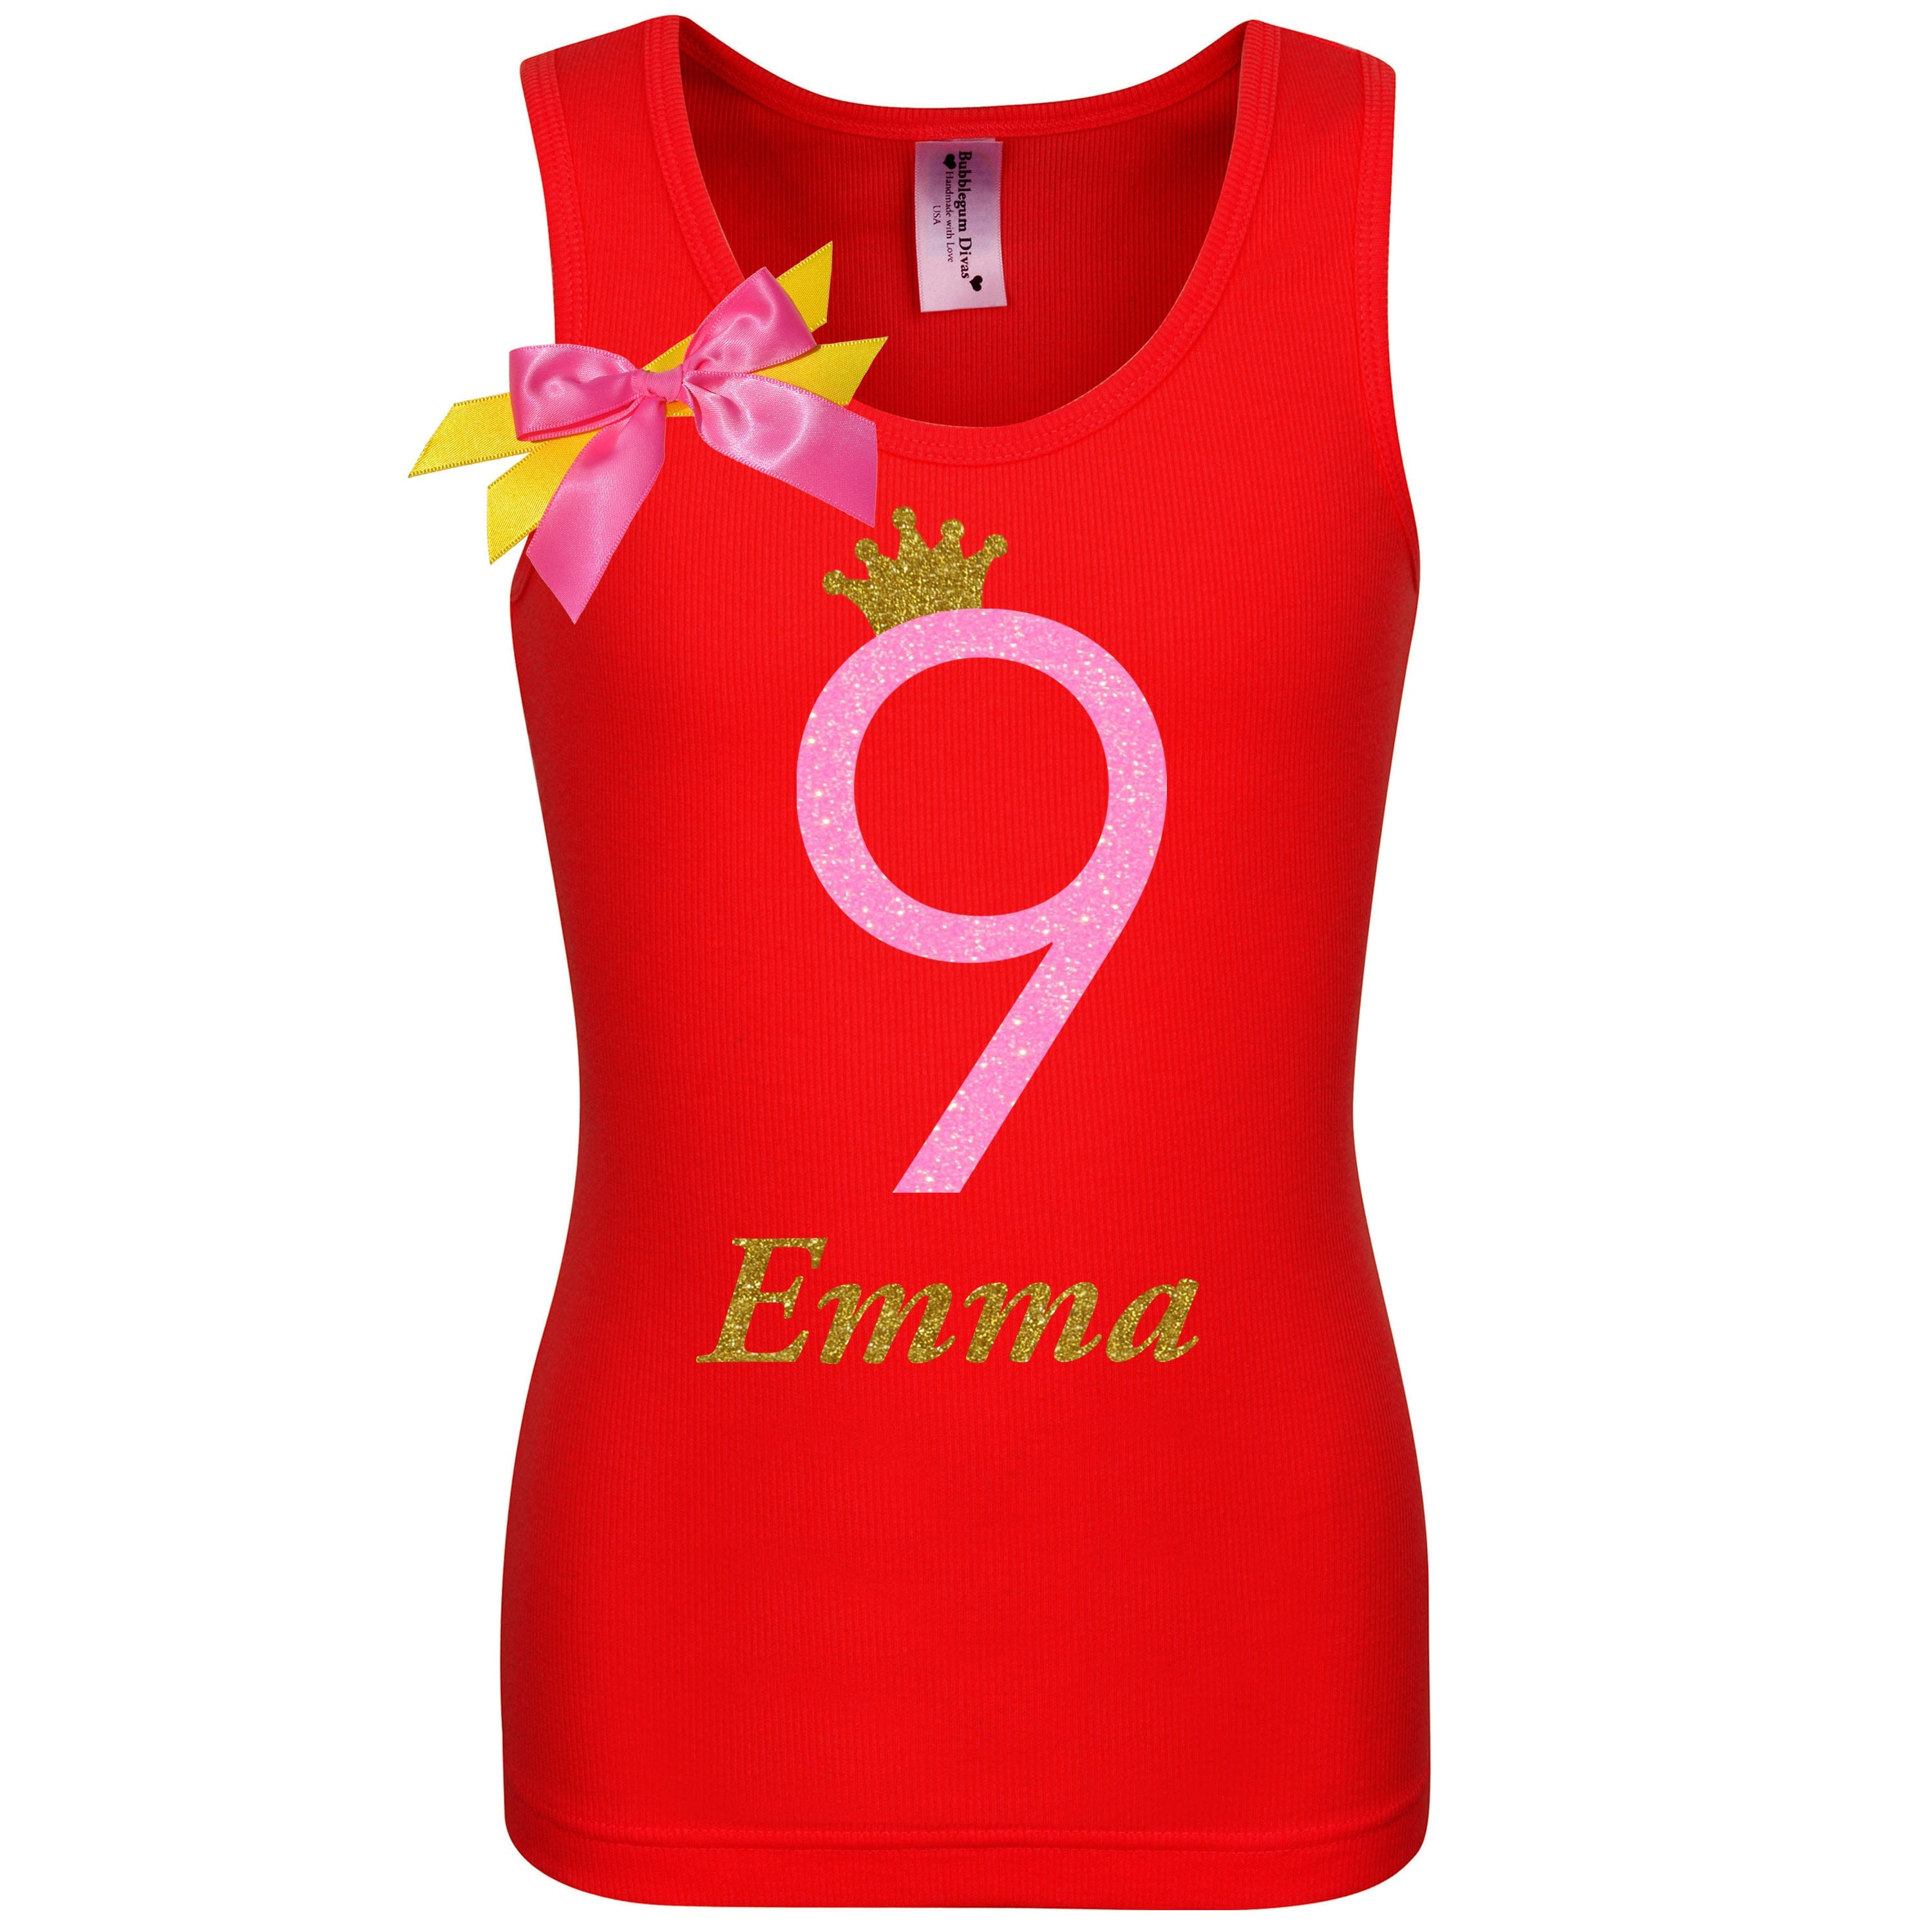 9th Birthday Girl Shirt Neon Pink Personalized Name Age 9